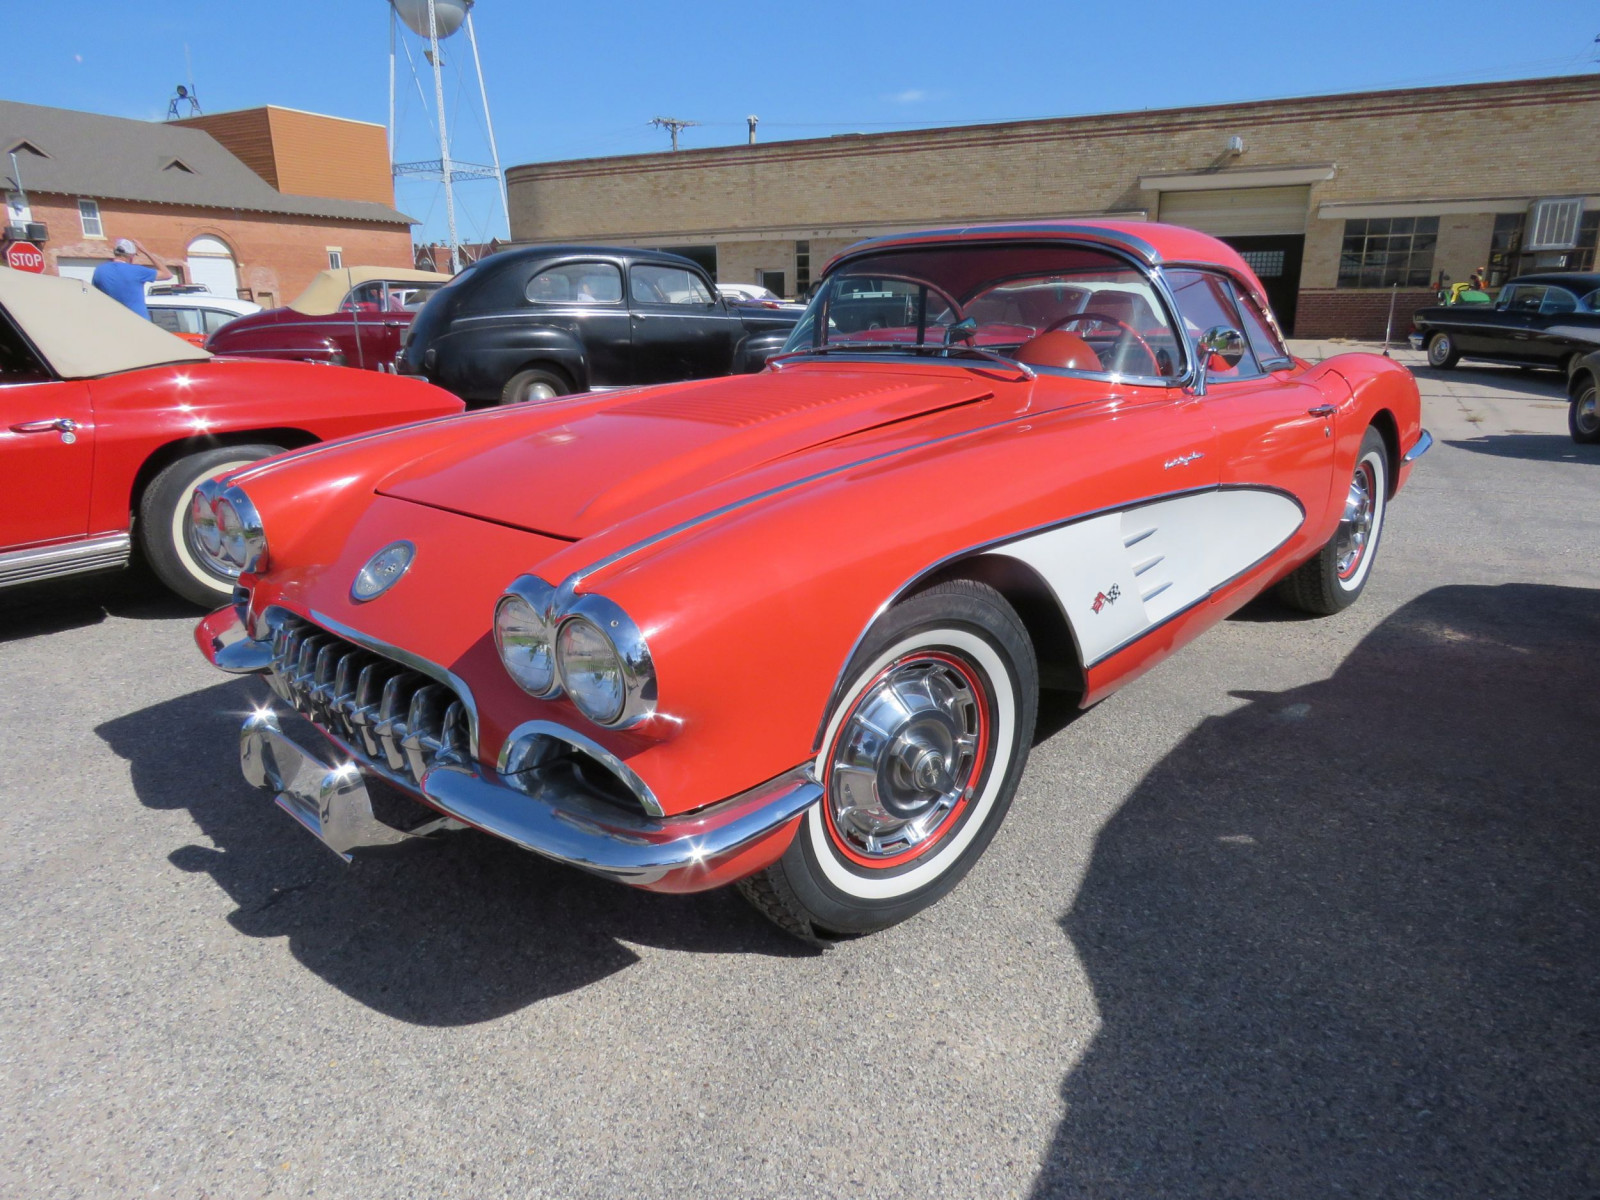 1958 CHEVROLET CORVETTE FUEL INJECTED ROADSTER - Image 3